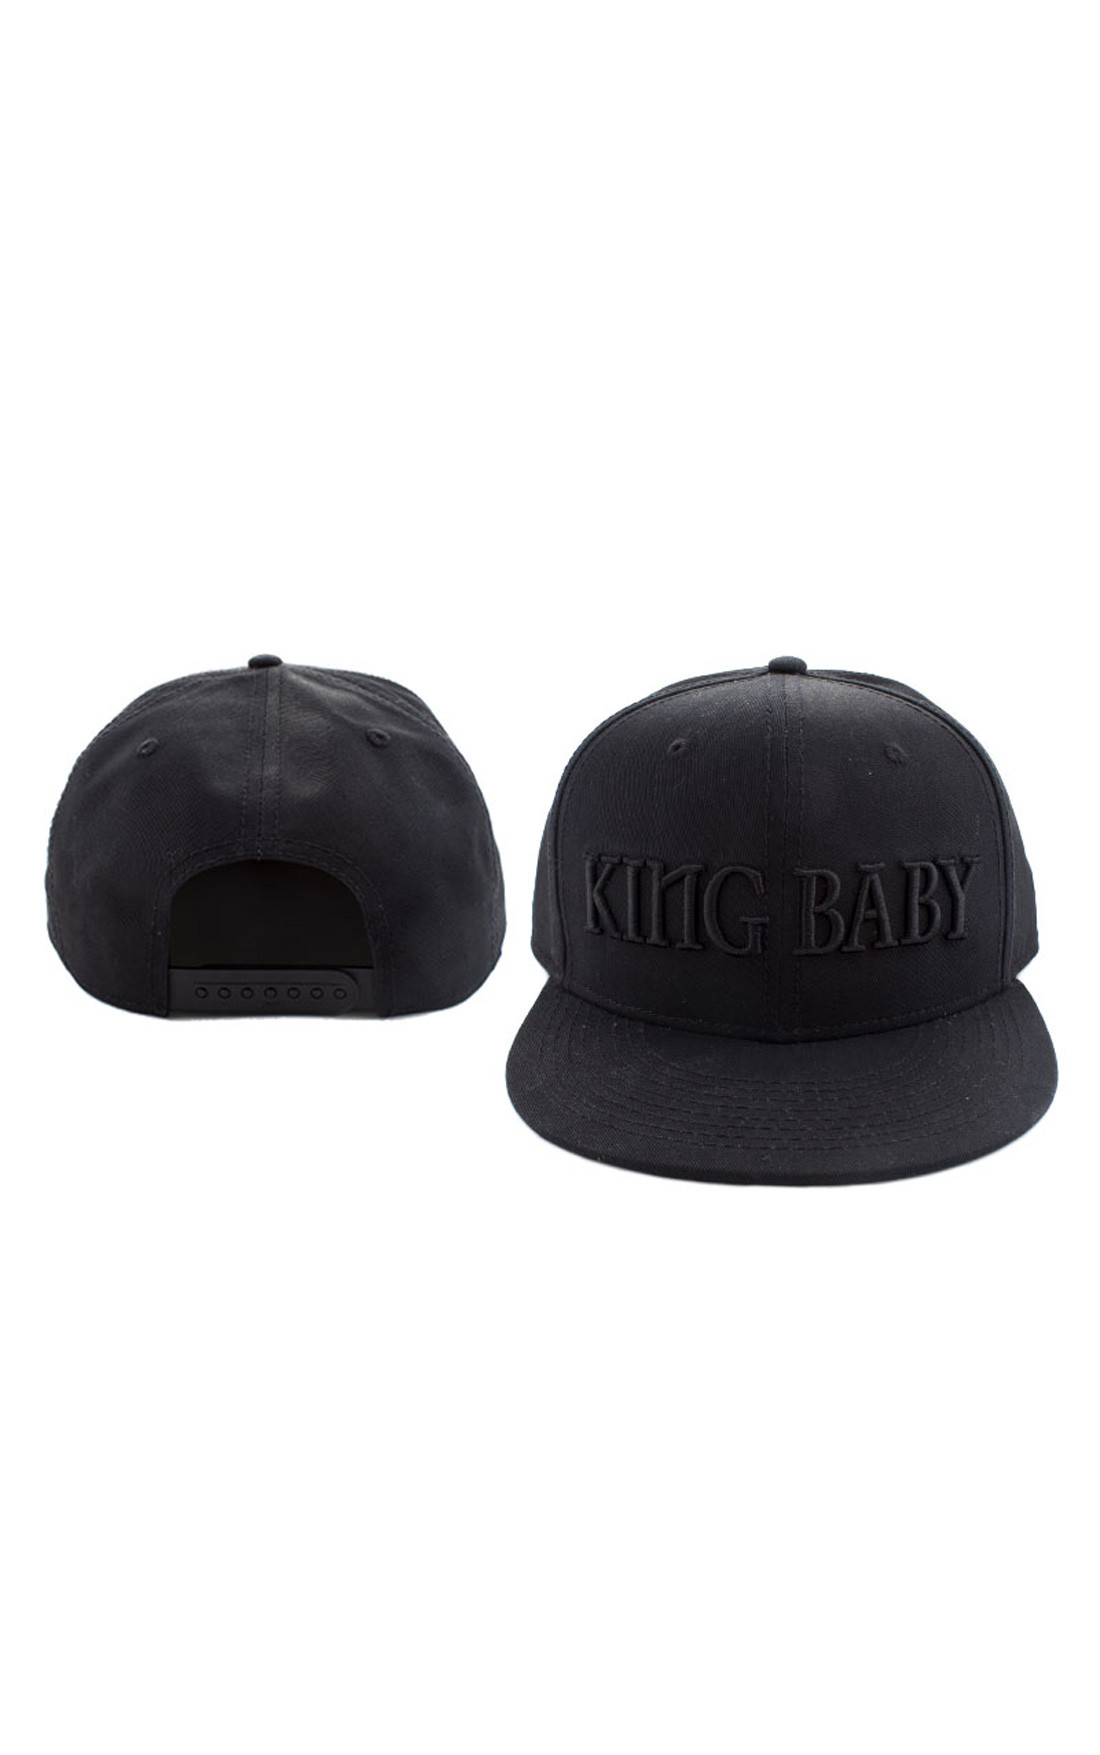 King Baby - King Baby Hat Black on Black (A80-5026)